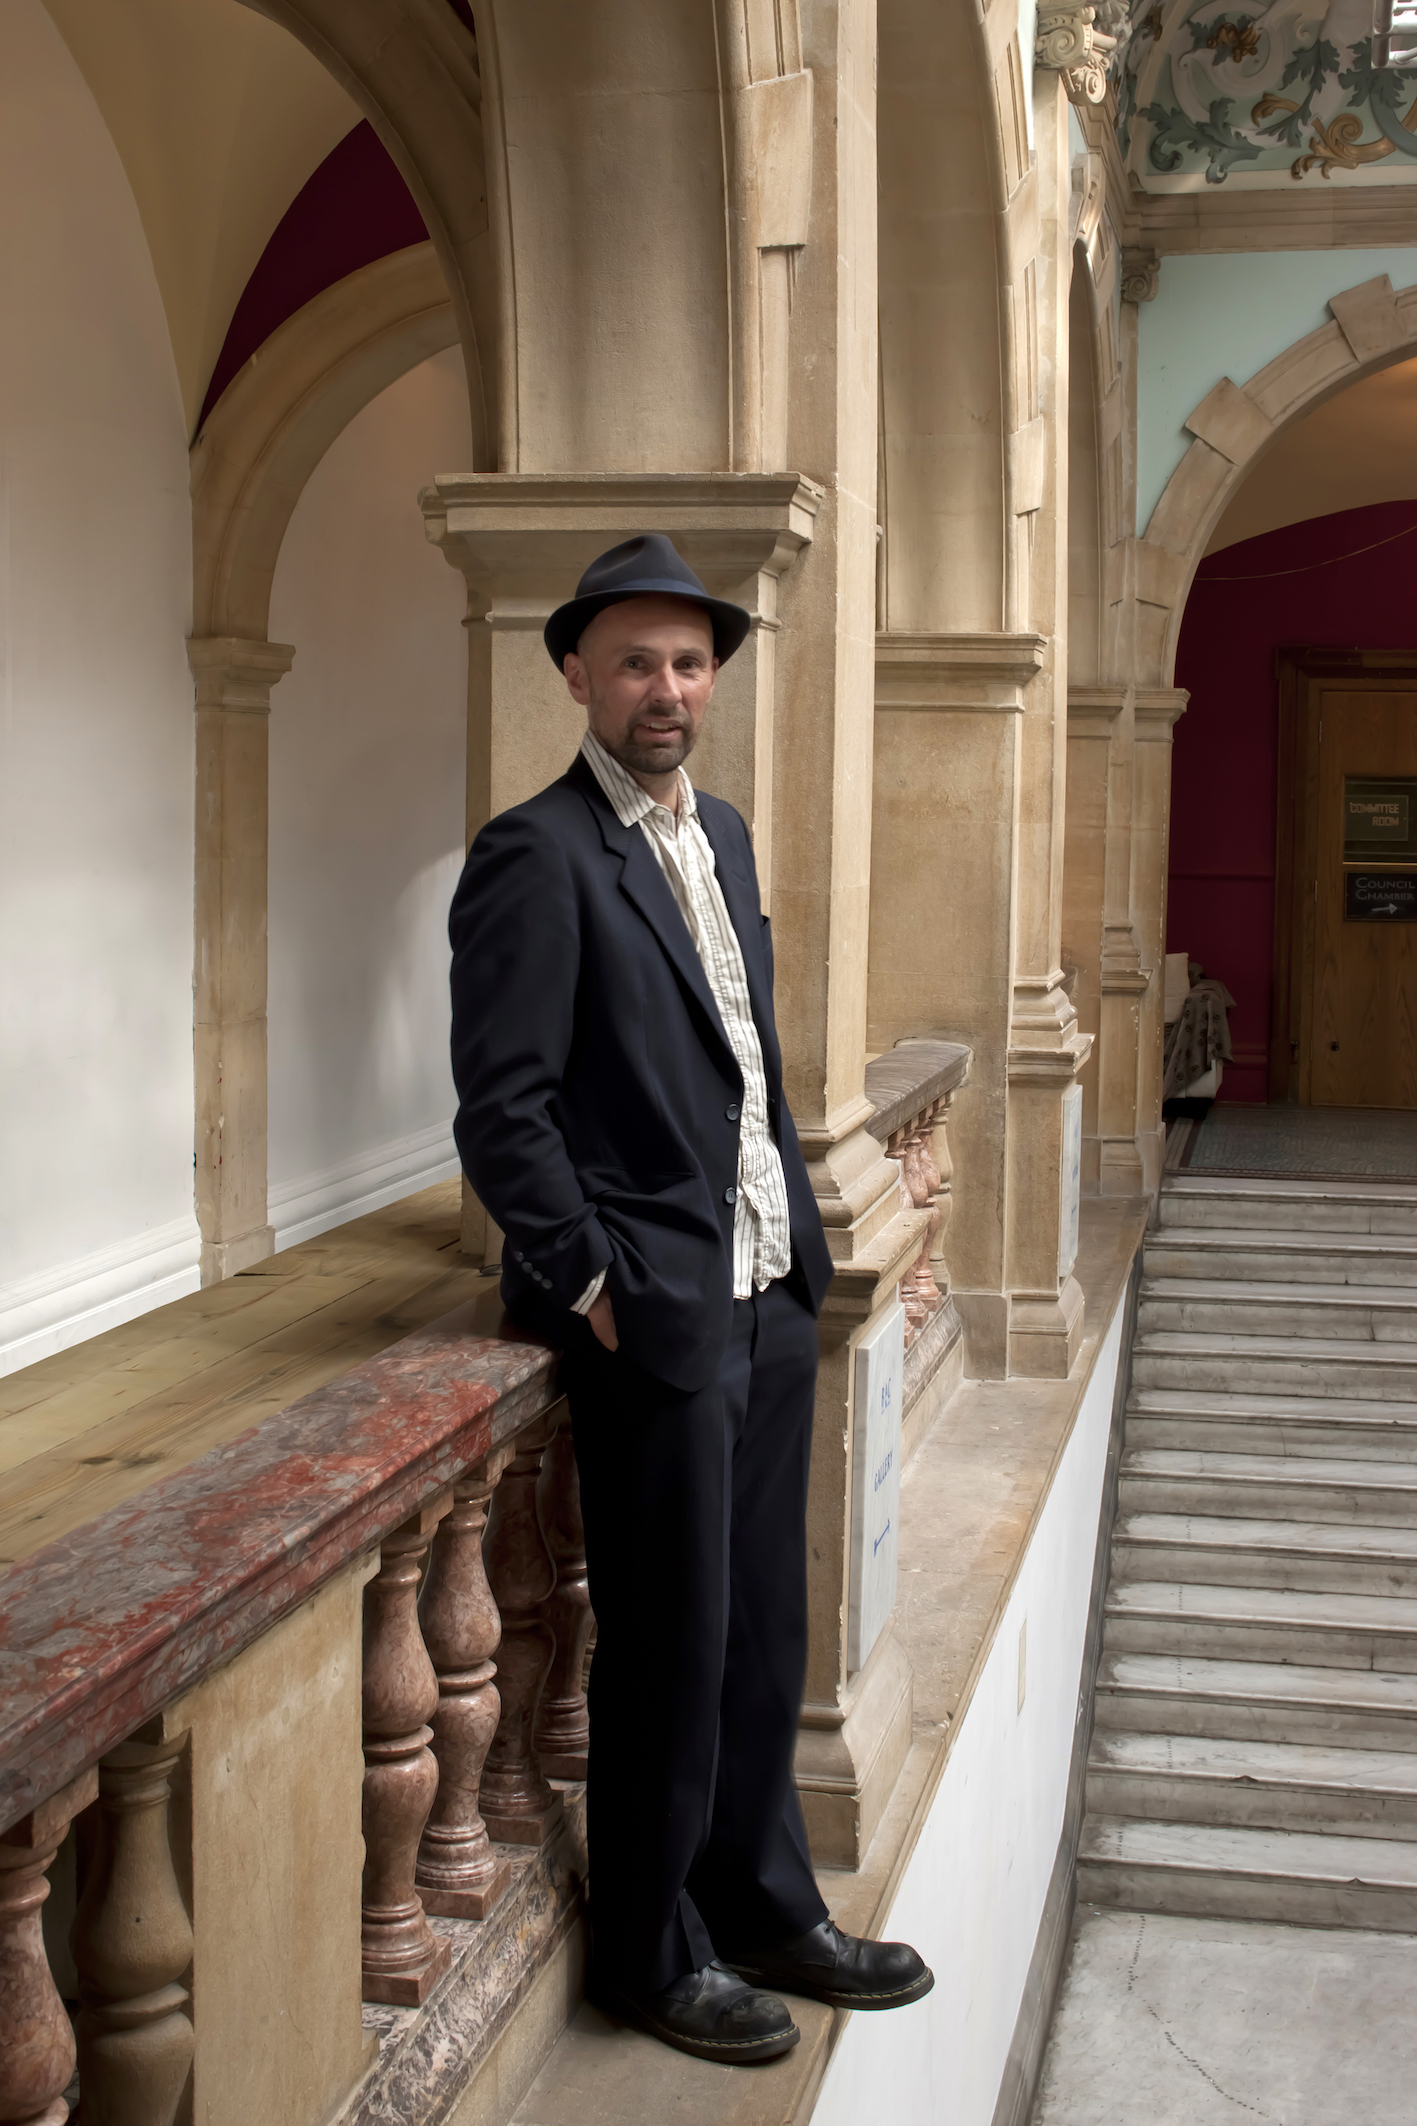 Jubb stands down at Battersea Arts Centre